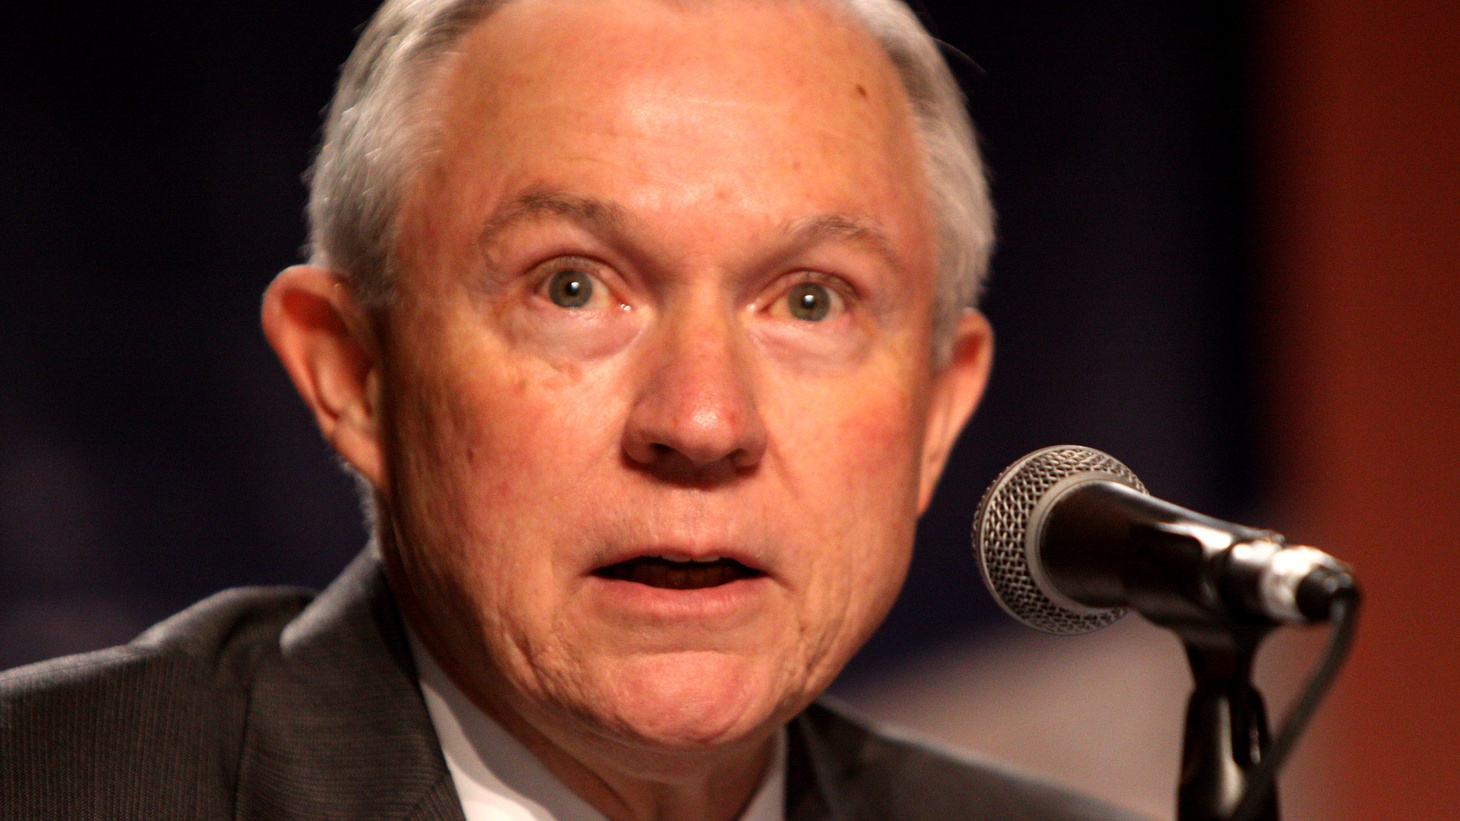 Senator Jeff Sessions faced tough questions at his confirmation hearing for Attorney General. We talk about his record on the War on Drugs, what it would mean for legal marijuana use in California, and what he might do about undocumented immigrants.